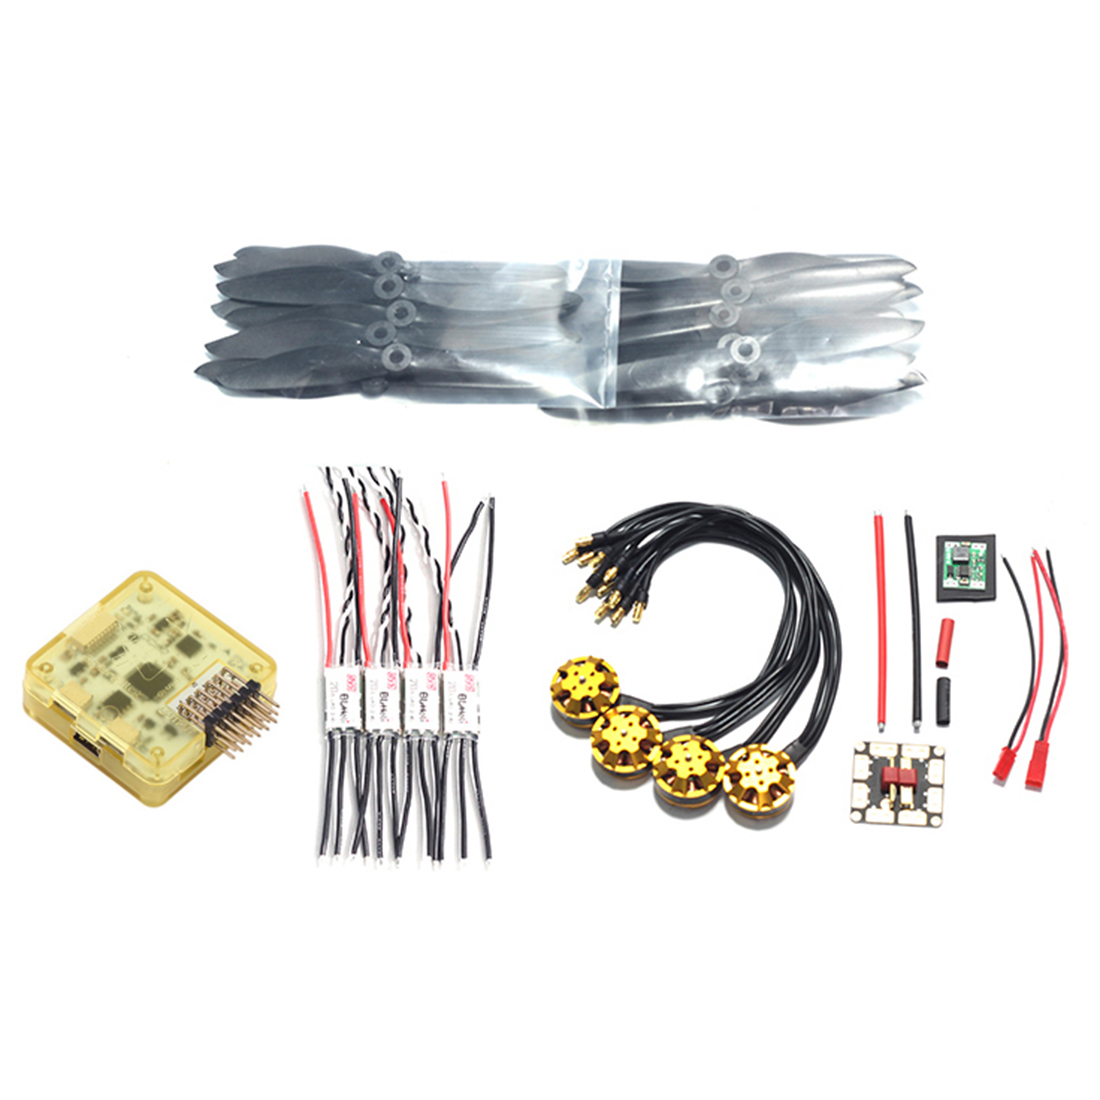 medium resolution of cc3d flight controller 2204 2400kv motor 6040 propeller blhli 20a esc 5v step down module 35 35 lay plate 14awg silicon cable in drone accessories kits